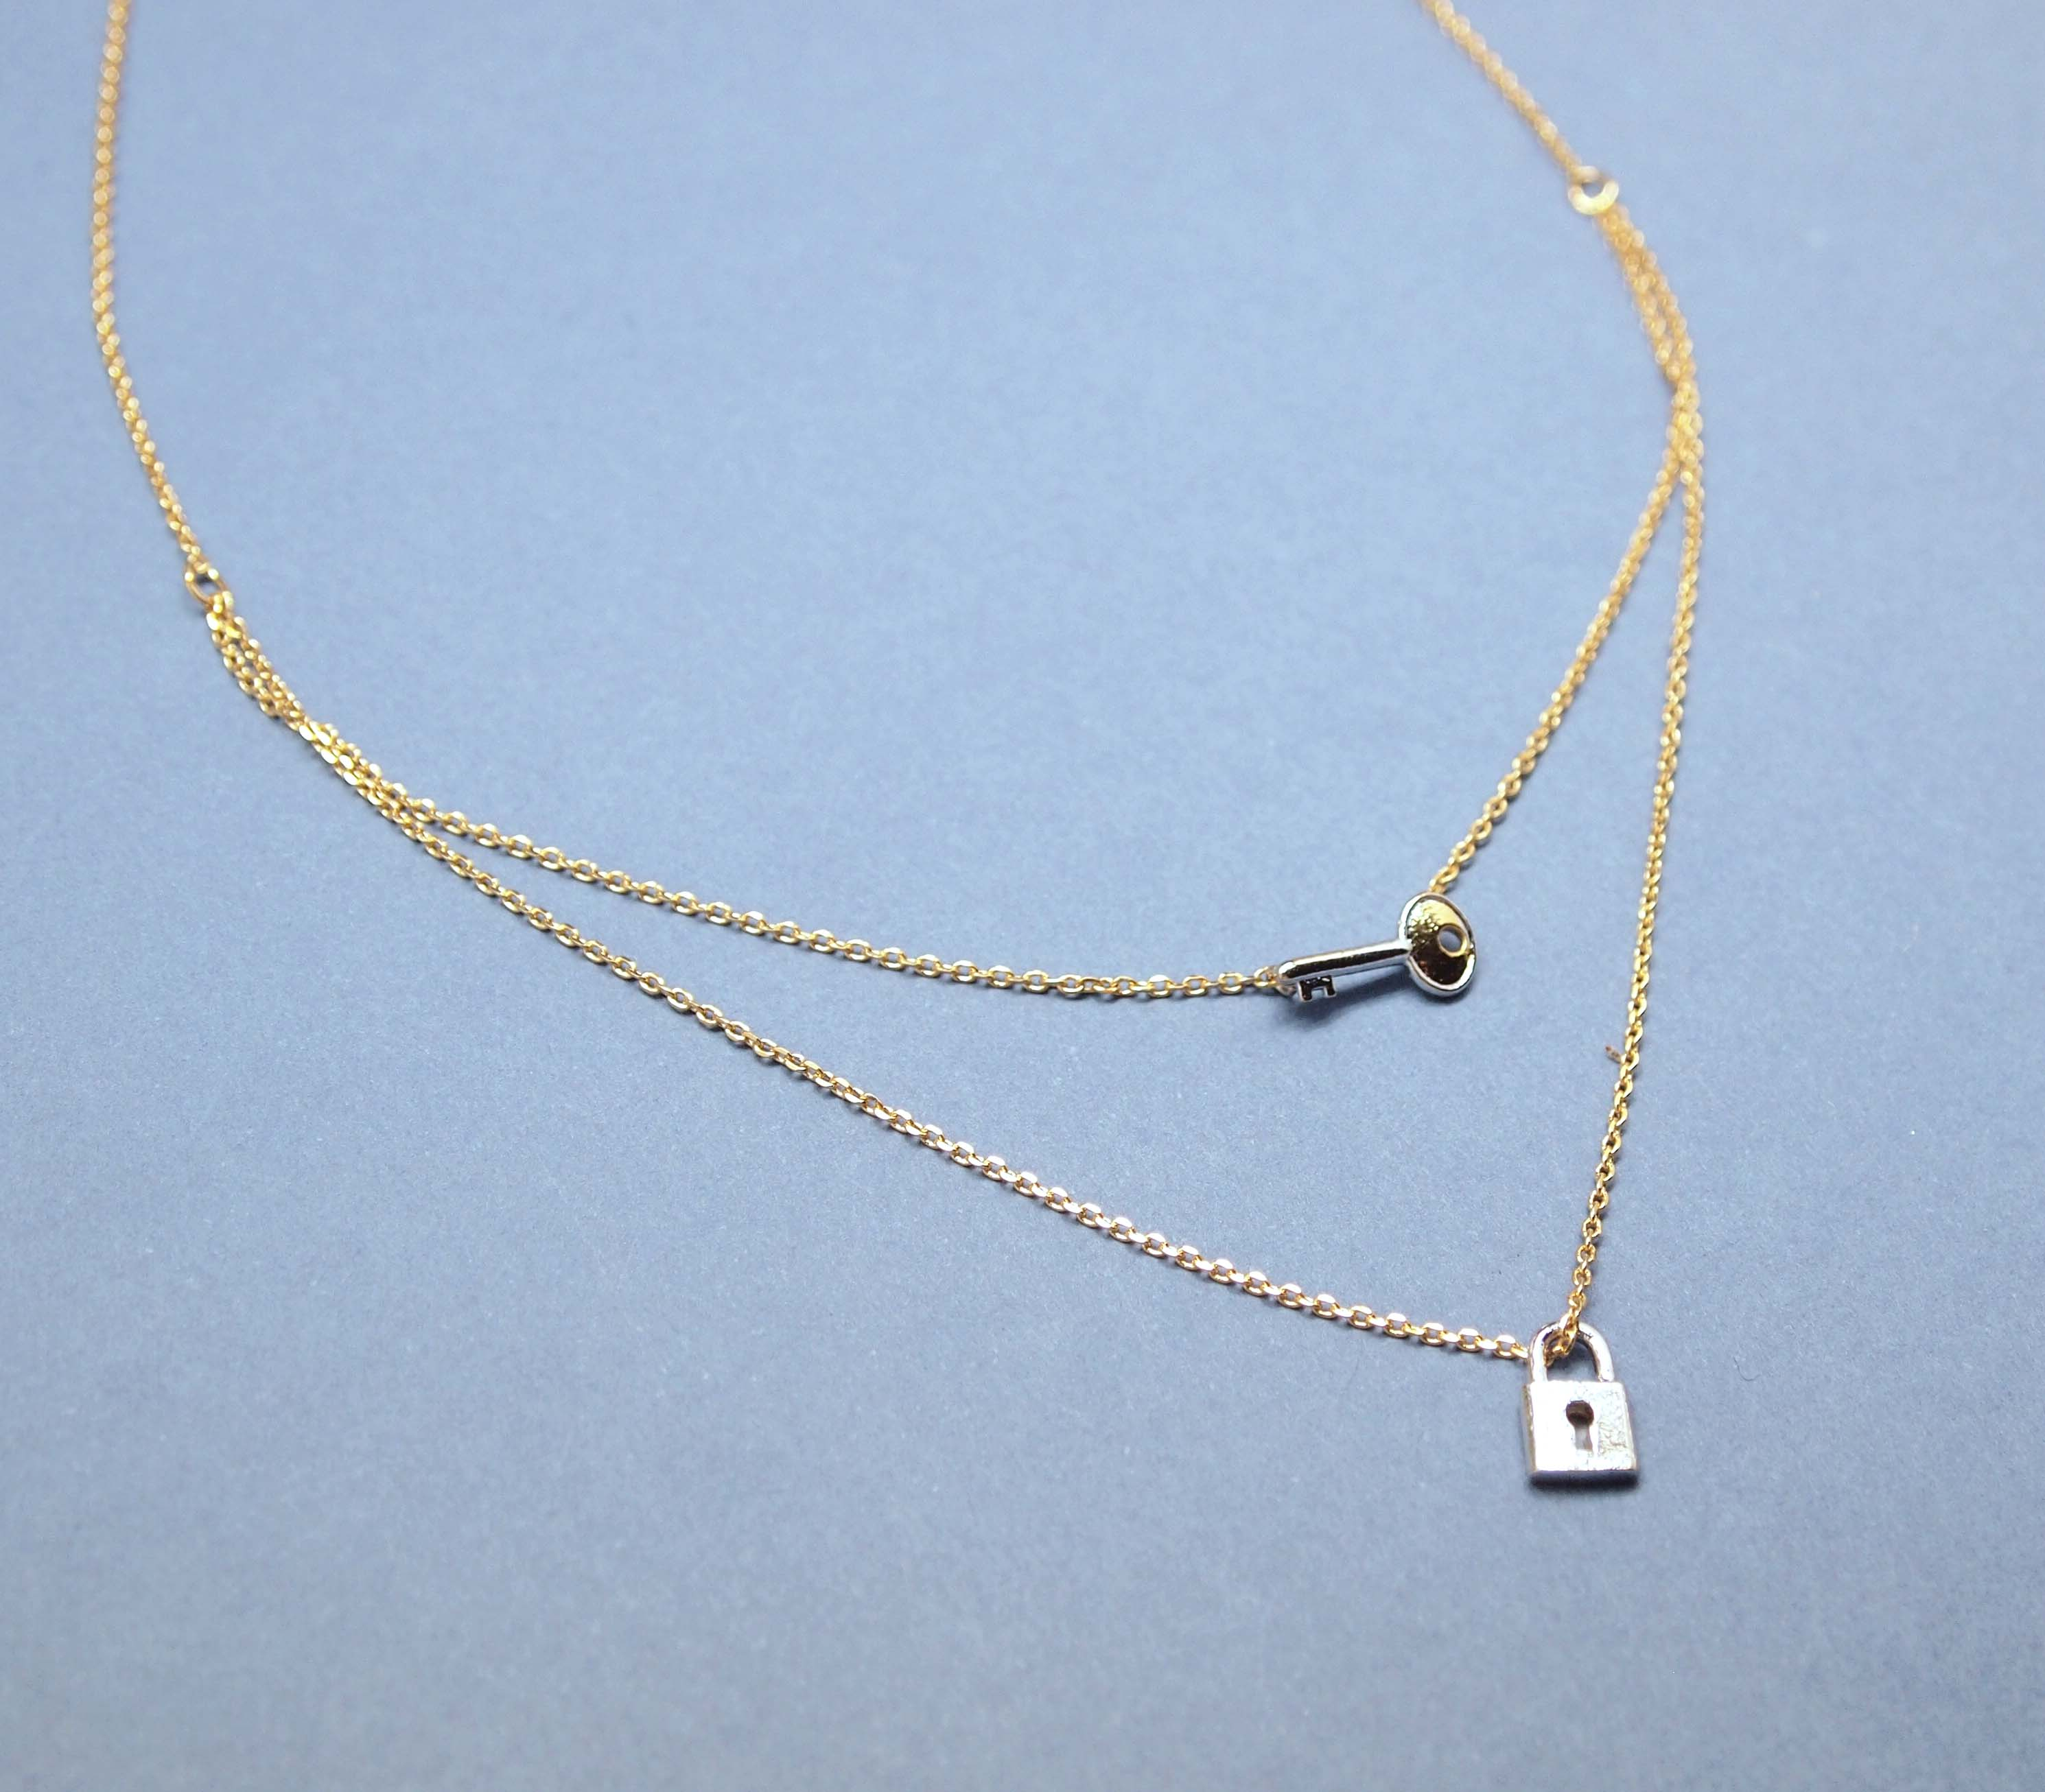 detail pendant product tiny with sticj crystal chain necklace double long simple buy tone gold designs layer